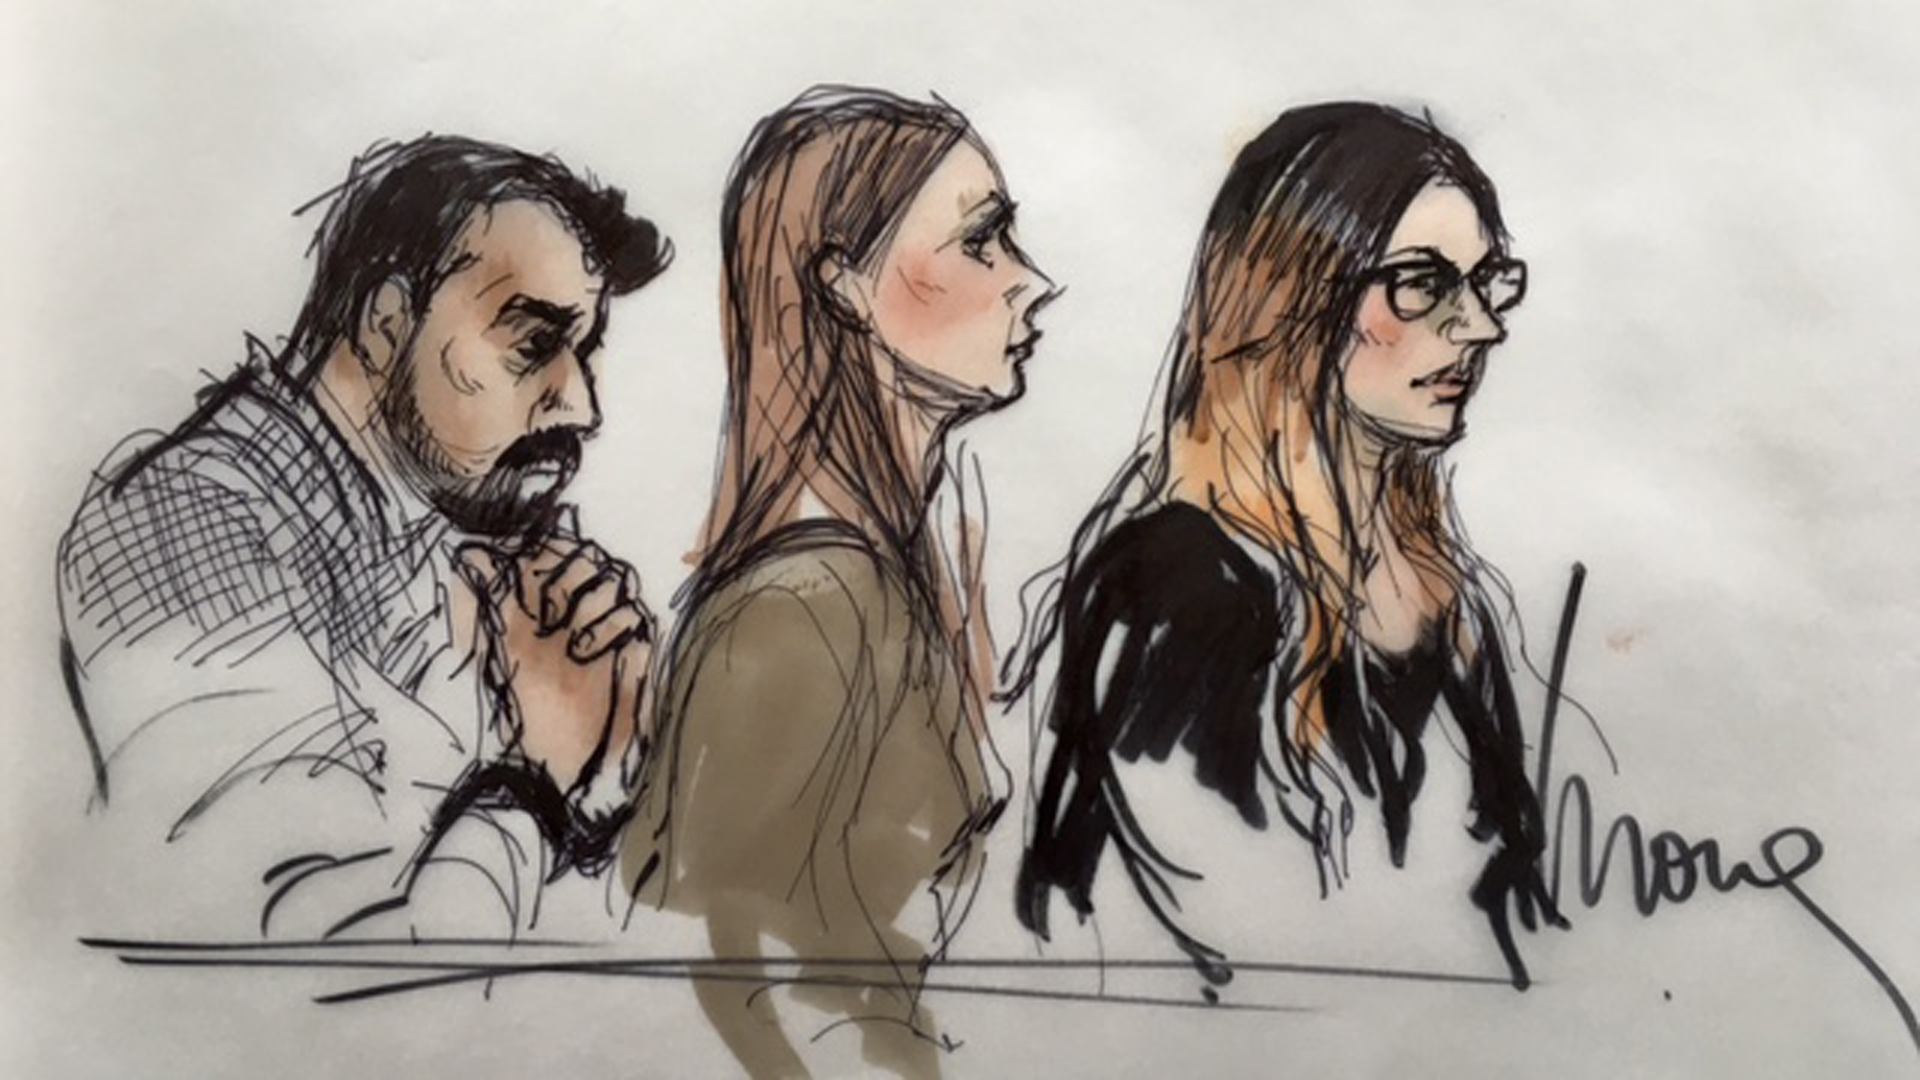 Three people connected to San Bernardino shooter Syed Rizwan Farook appear in federal court in Riverside on April 28, 2016: left to right, Syed Raheel Farook, Mariya Chernykh and Tatiana Farook. (Mona S. Edwards)